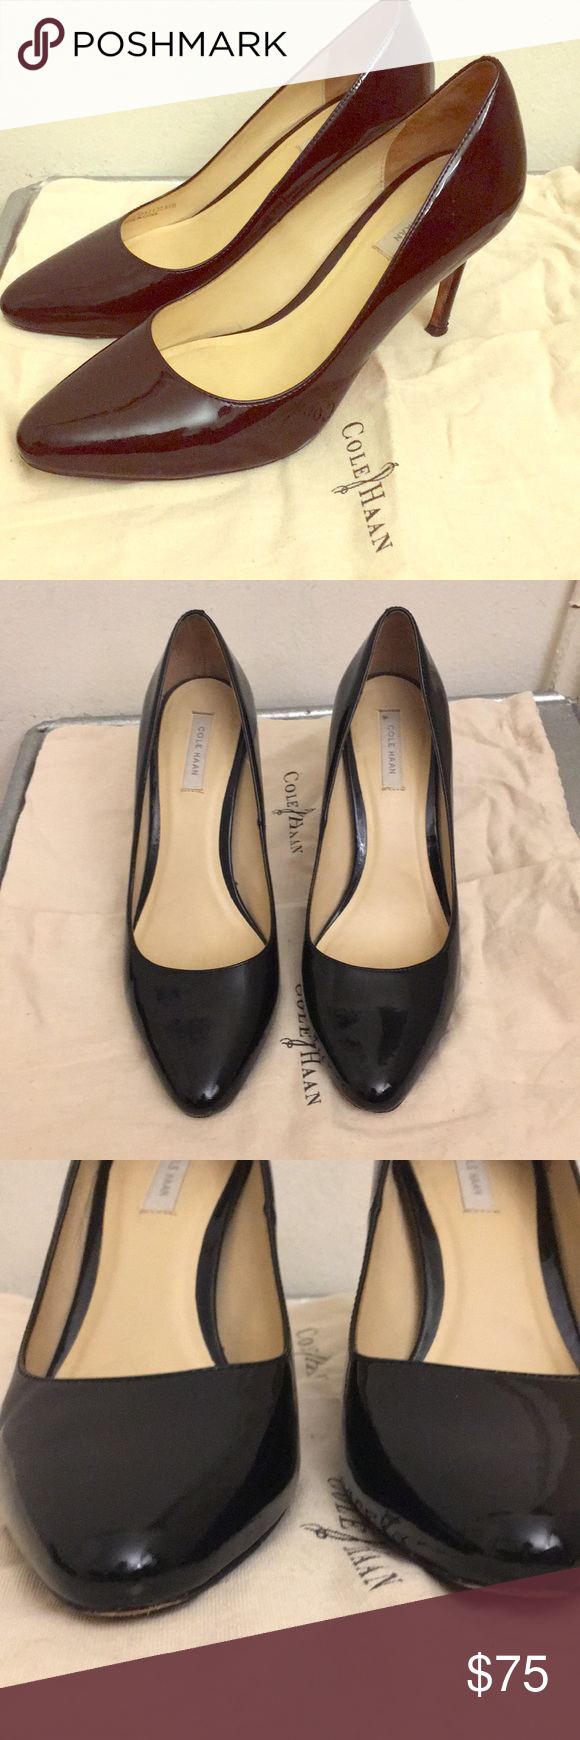 Cole Haan Bethany black patent pumps 6.5 Lovely (and COMFORTABLE!) black  patent pumps